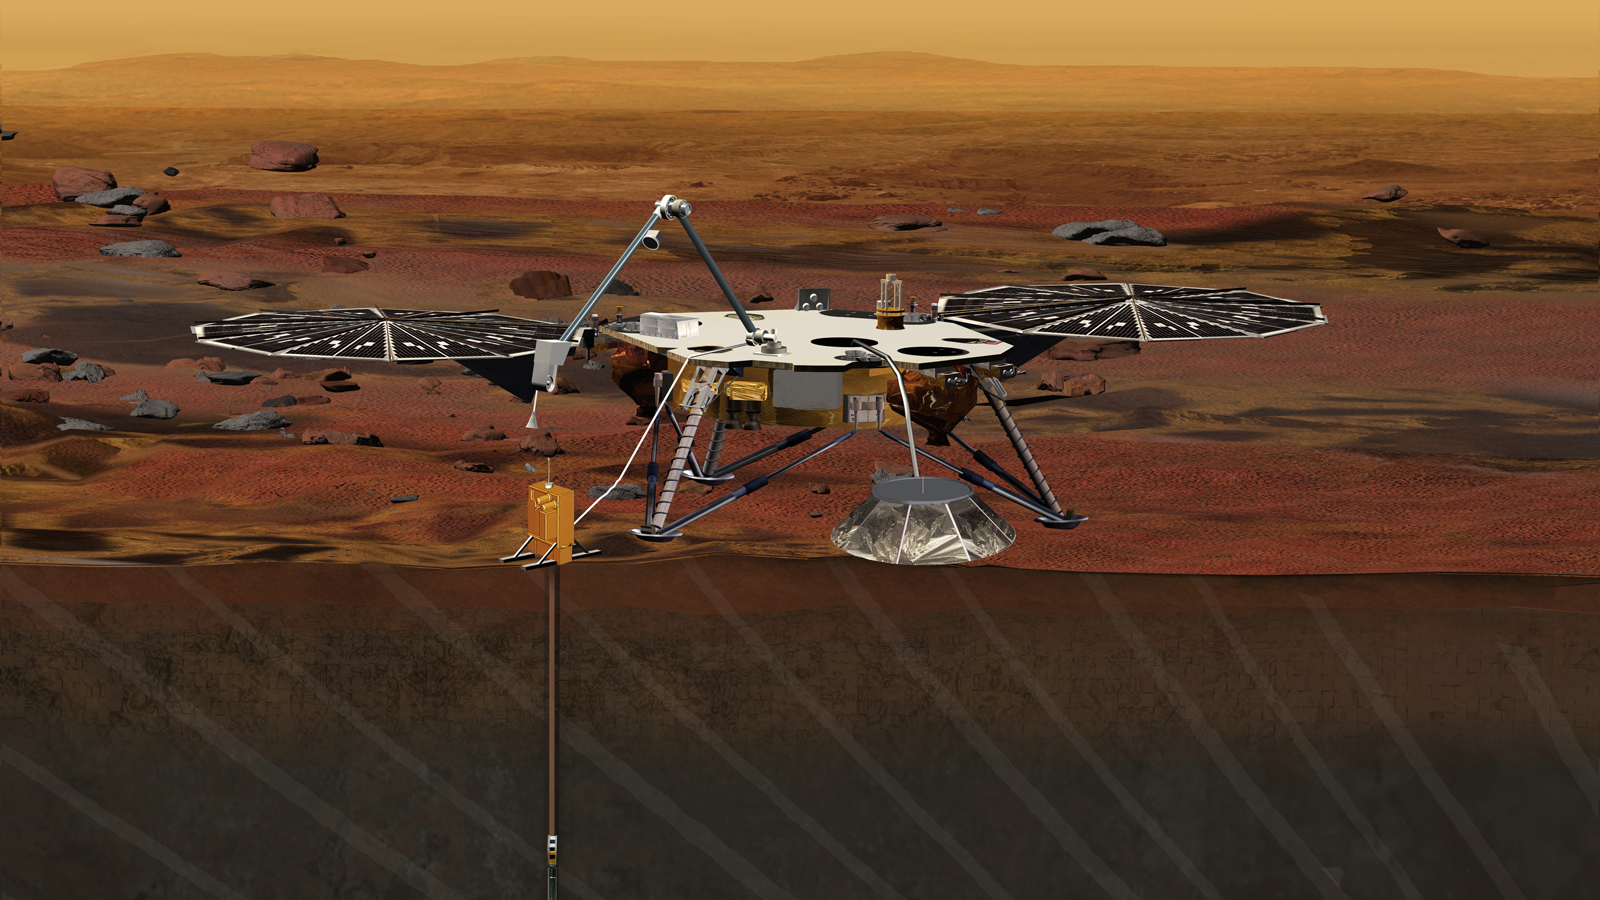 Artist's concept of the InSight Mars lander, the next Discovery-class mission set for launch in March 2016. Credit: NASA/JPL-Caltech